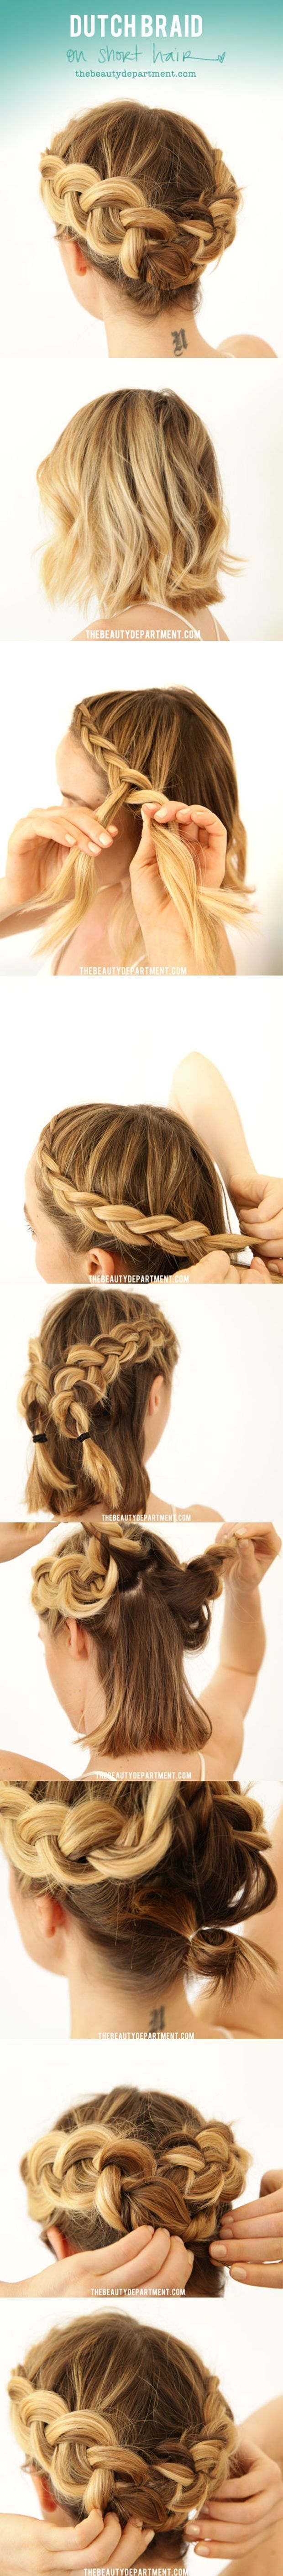 I'll show you how we did dutch braid on short hair, you could really see detail in the larger individual photos on my normal tutorial.